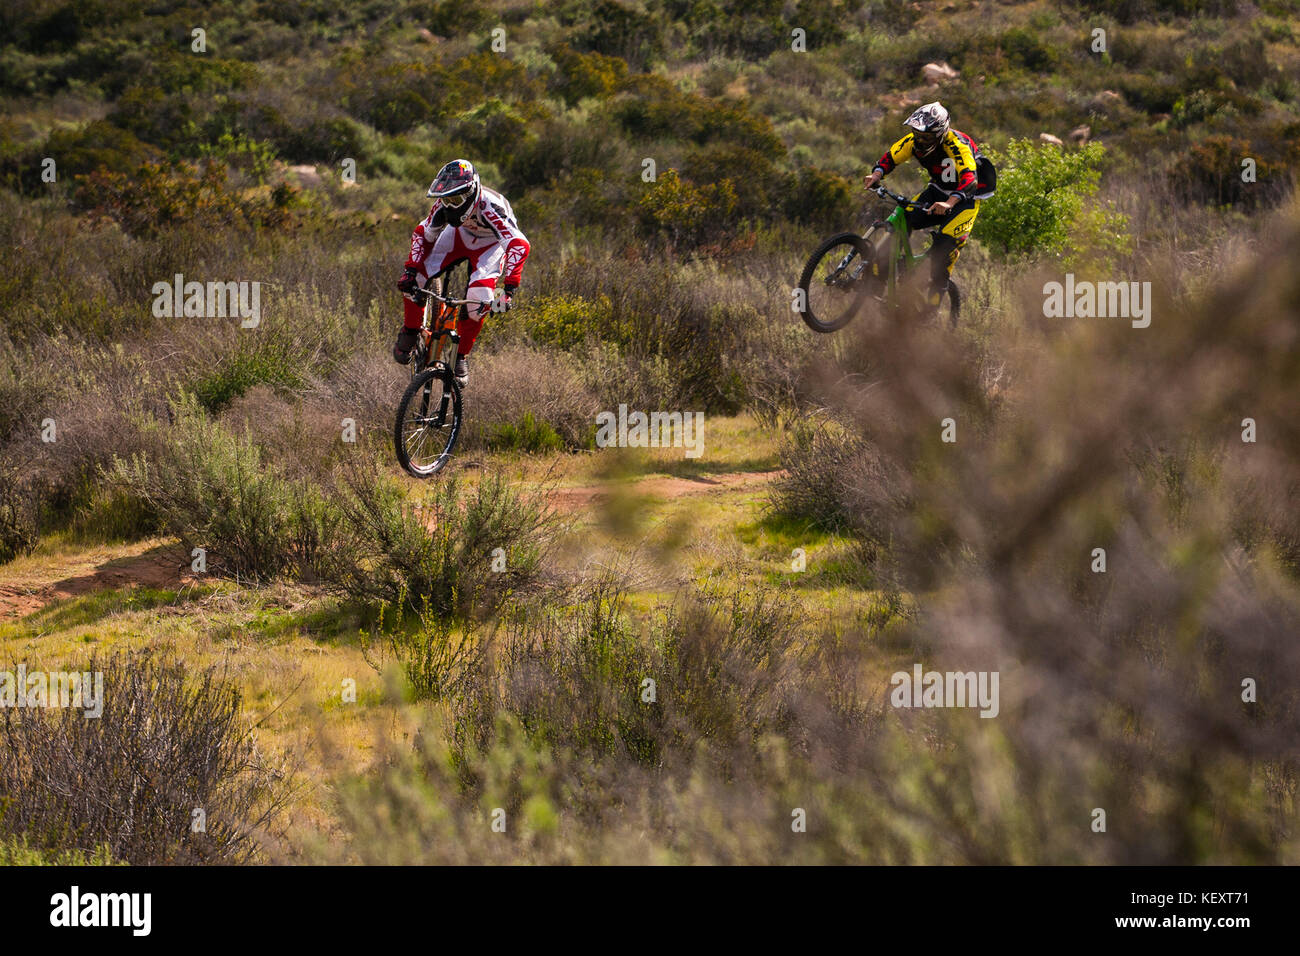 JD Swanguen (Left) and Jacob Hyde ride a trail in San Diego County, CA. Feb 23rd 2011. - Stock Image